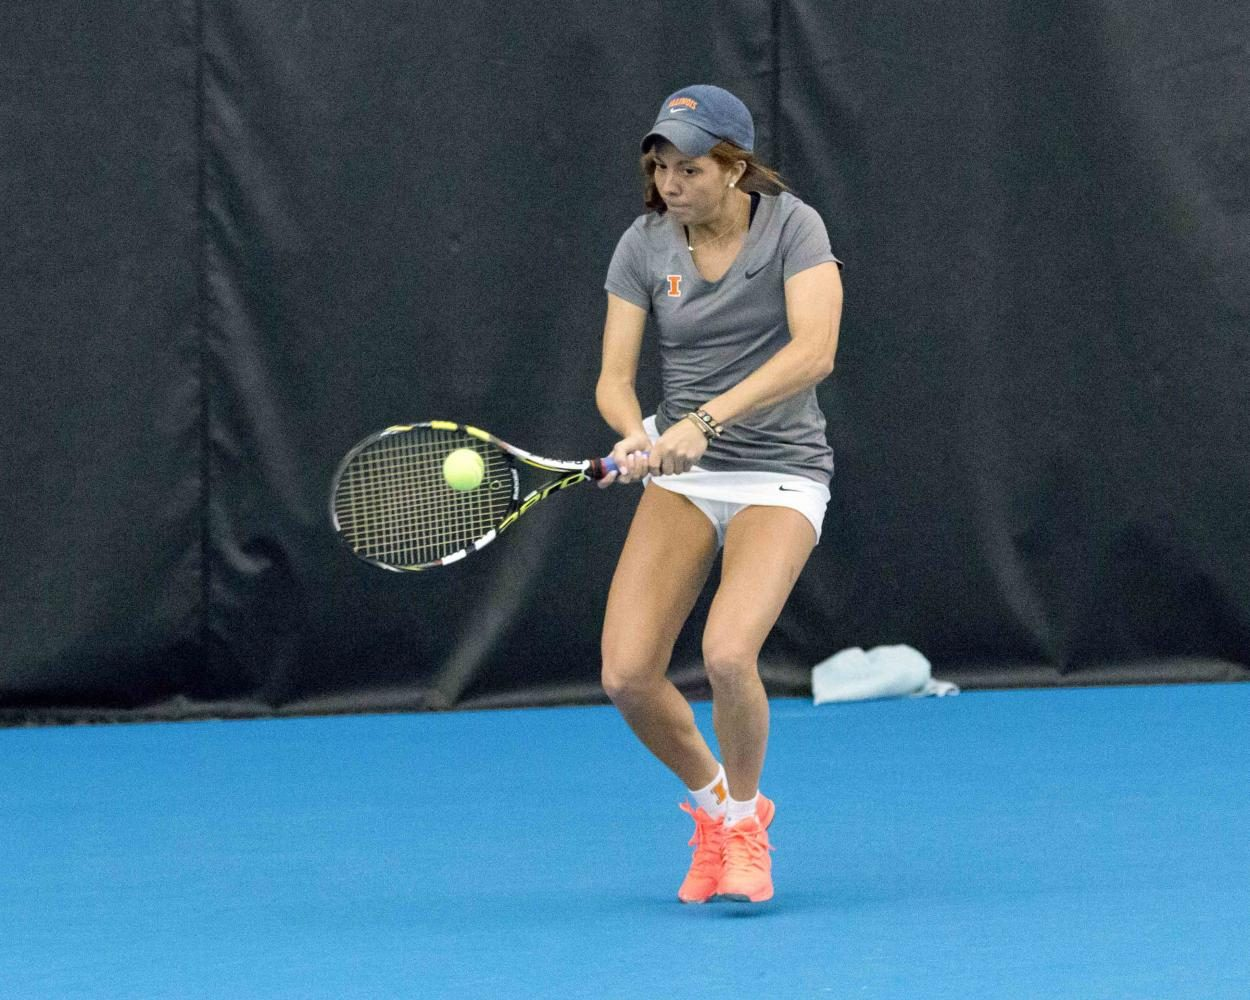 Illinois%27+Madie+Baillon+swings+for+the+ball+during+the+match+against+Nebraska+at+the+Atkin%27s+Tennis+Center+on+Sunday%2C+April+3.+